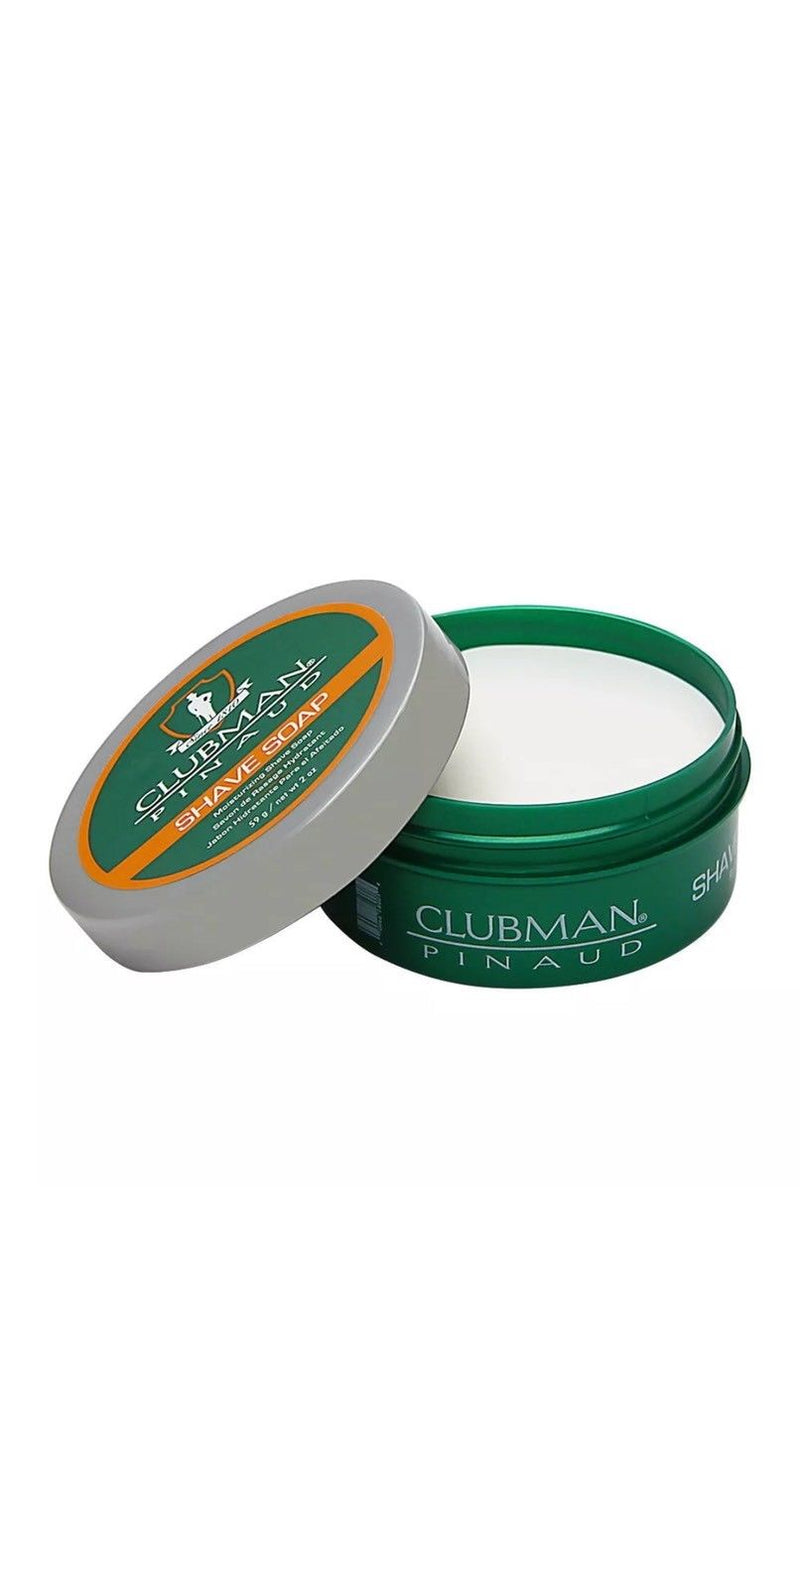 Clubman Pinaud Shave Soap 59 gr. - Barbersupplies & Co